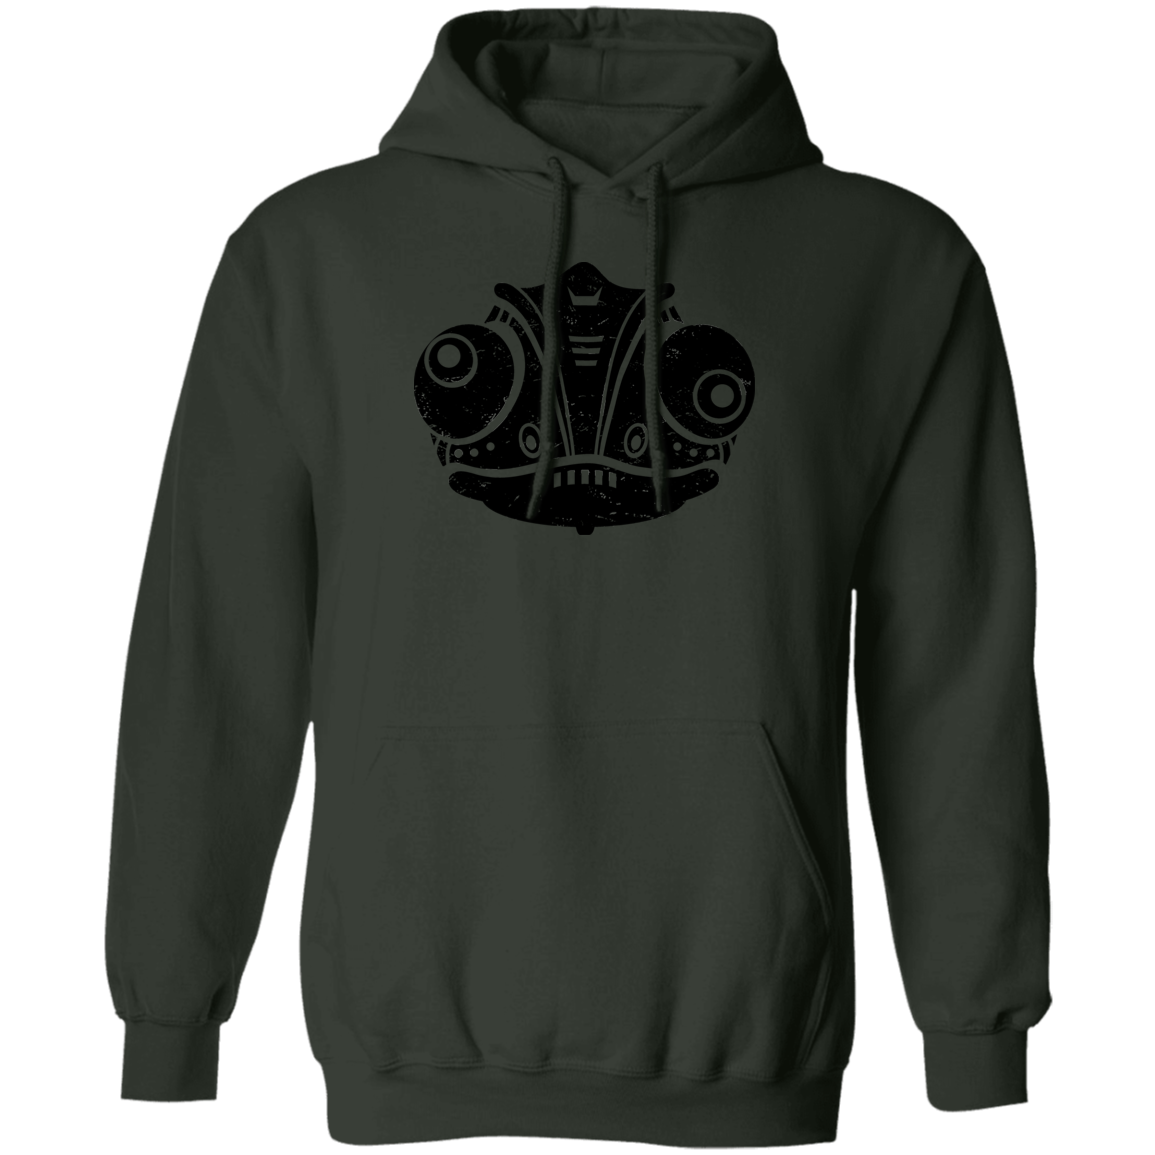 Black Distressed Emblem Hoodies for Adults (Chameleon/Fade)